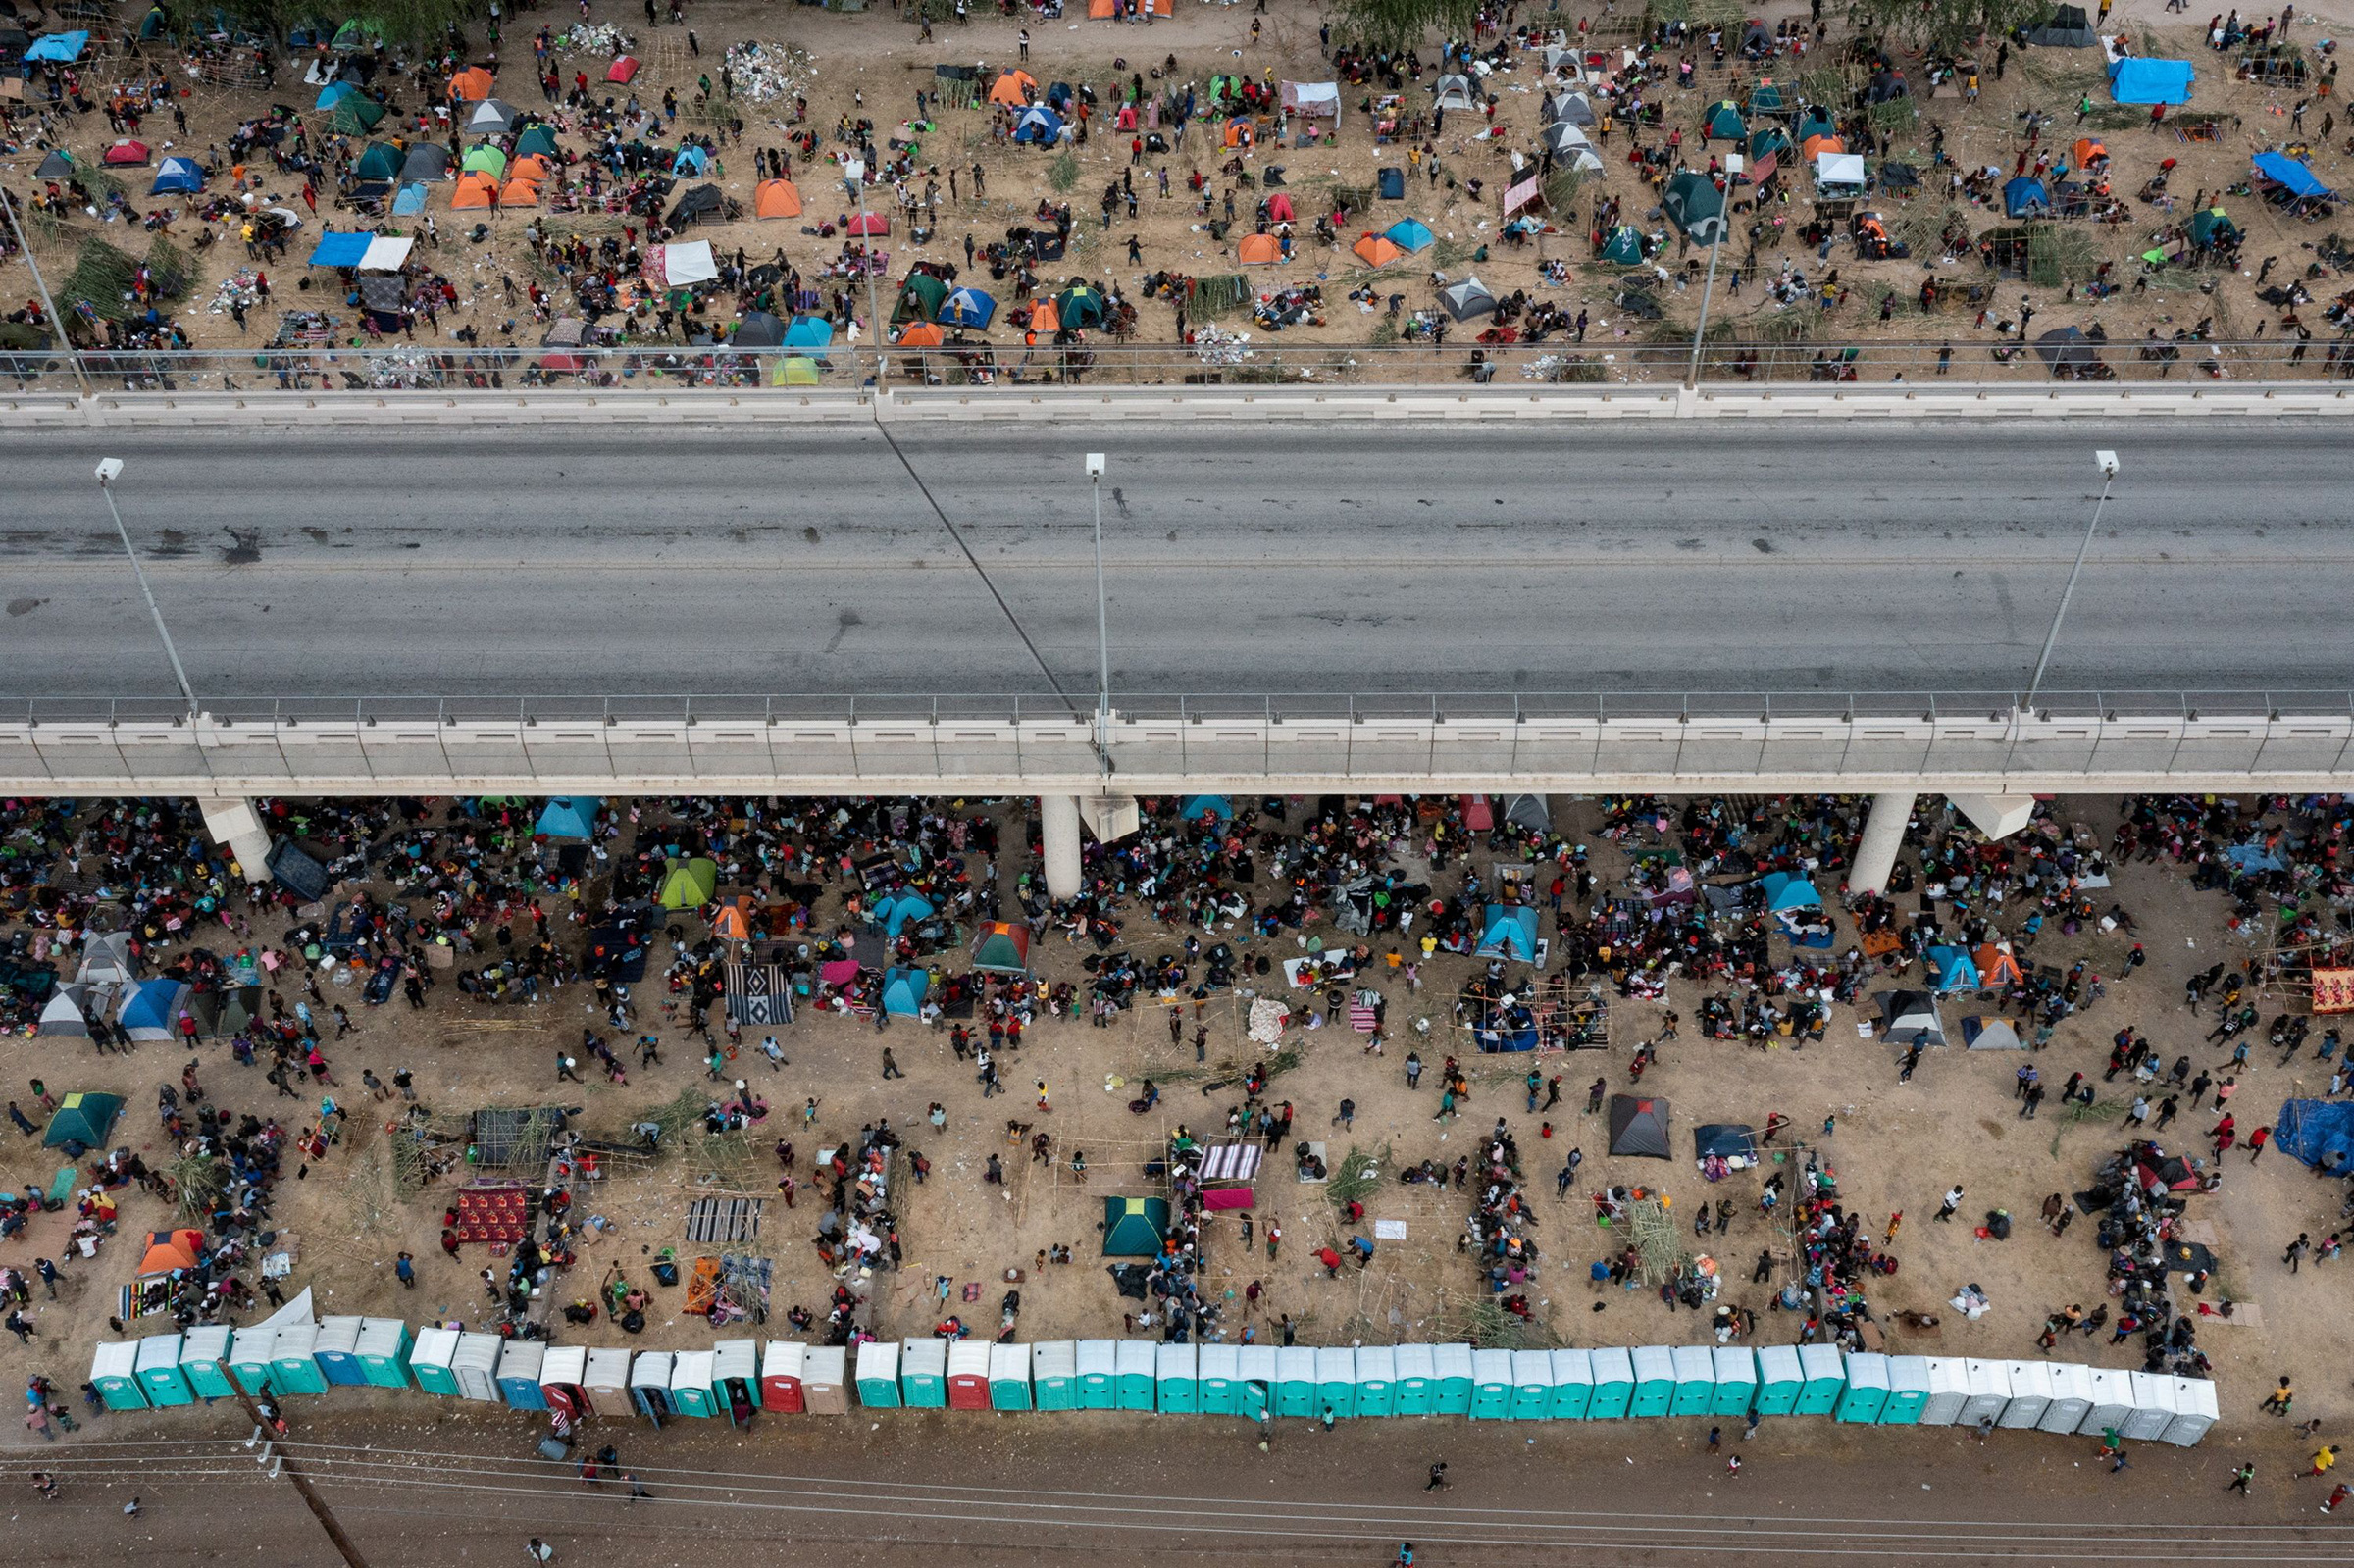 Some thousands of migrants take shelter as they await to be processed near the Del Rio International Bridge after crossing the Rio Grande river into the U.S. from Ciudad Acuna on Sept. 18. Picture taken with a drone.